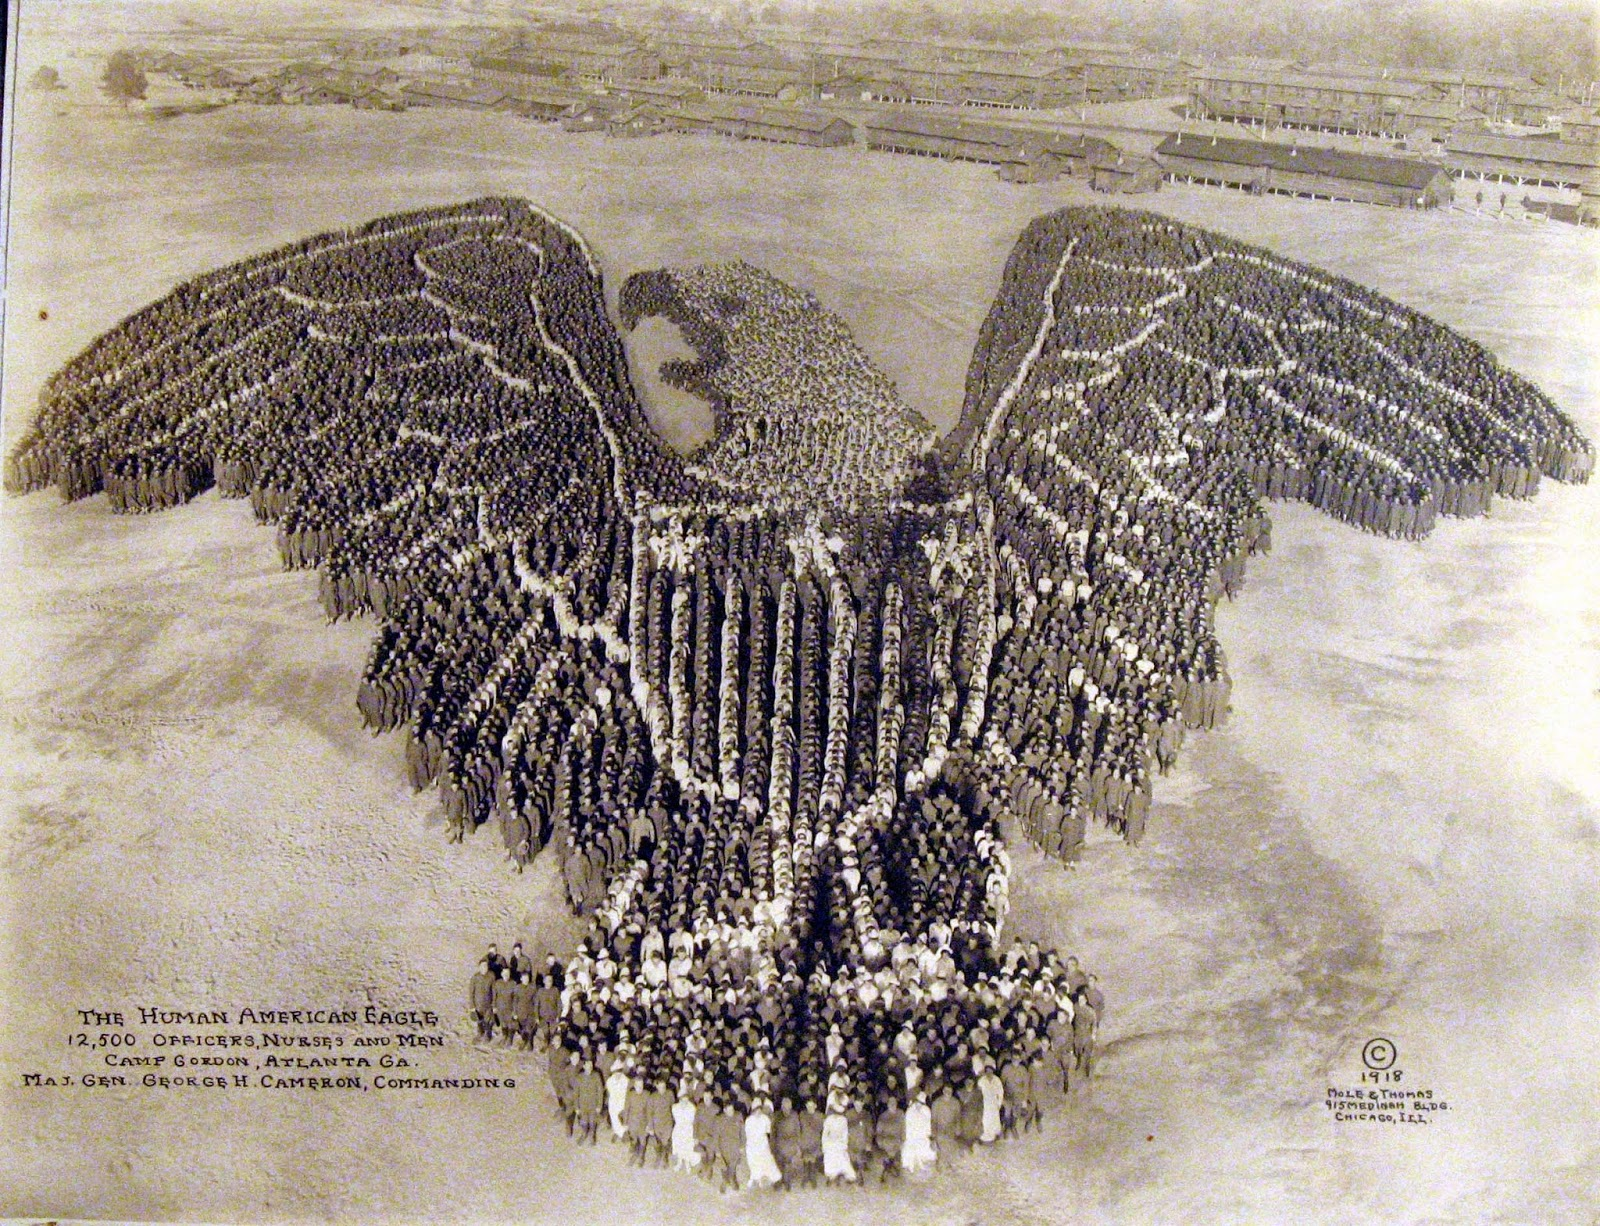 The Human American Eagle, 1918, Camp Gordan, Atlanta Ga. 12,500 officers, nurses and men.